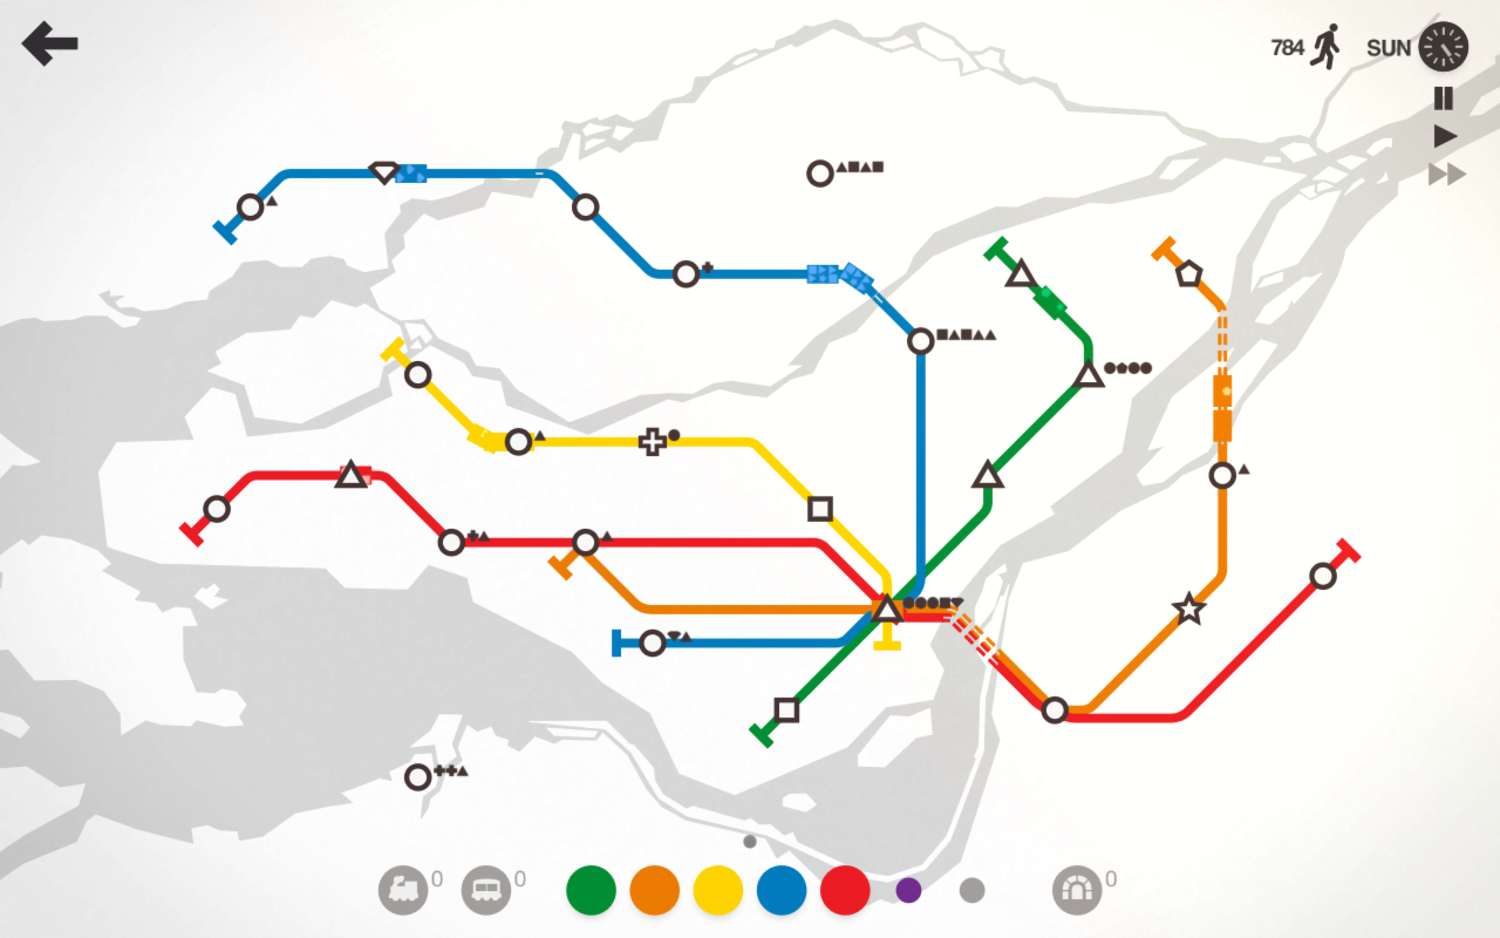 Ideal Nyc Subway Map Efficient.Mini Metro Will Show You The Science Behind Designing A Subway Low